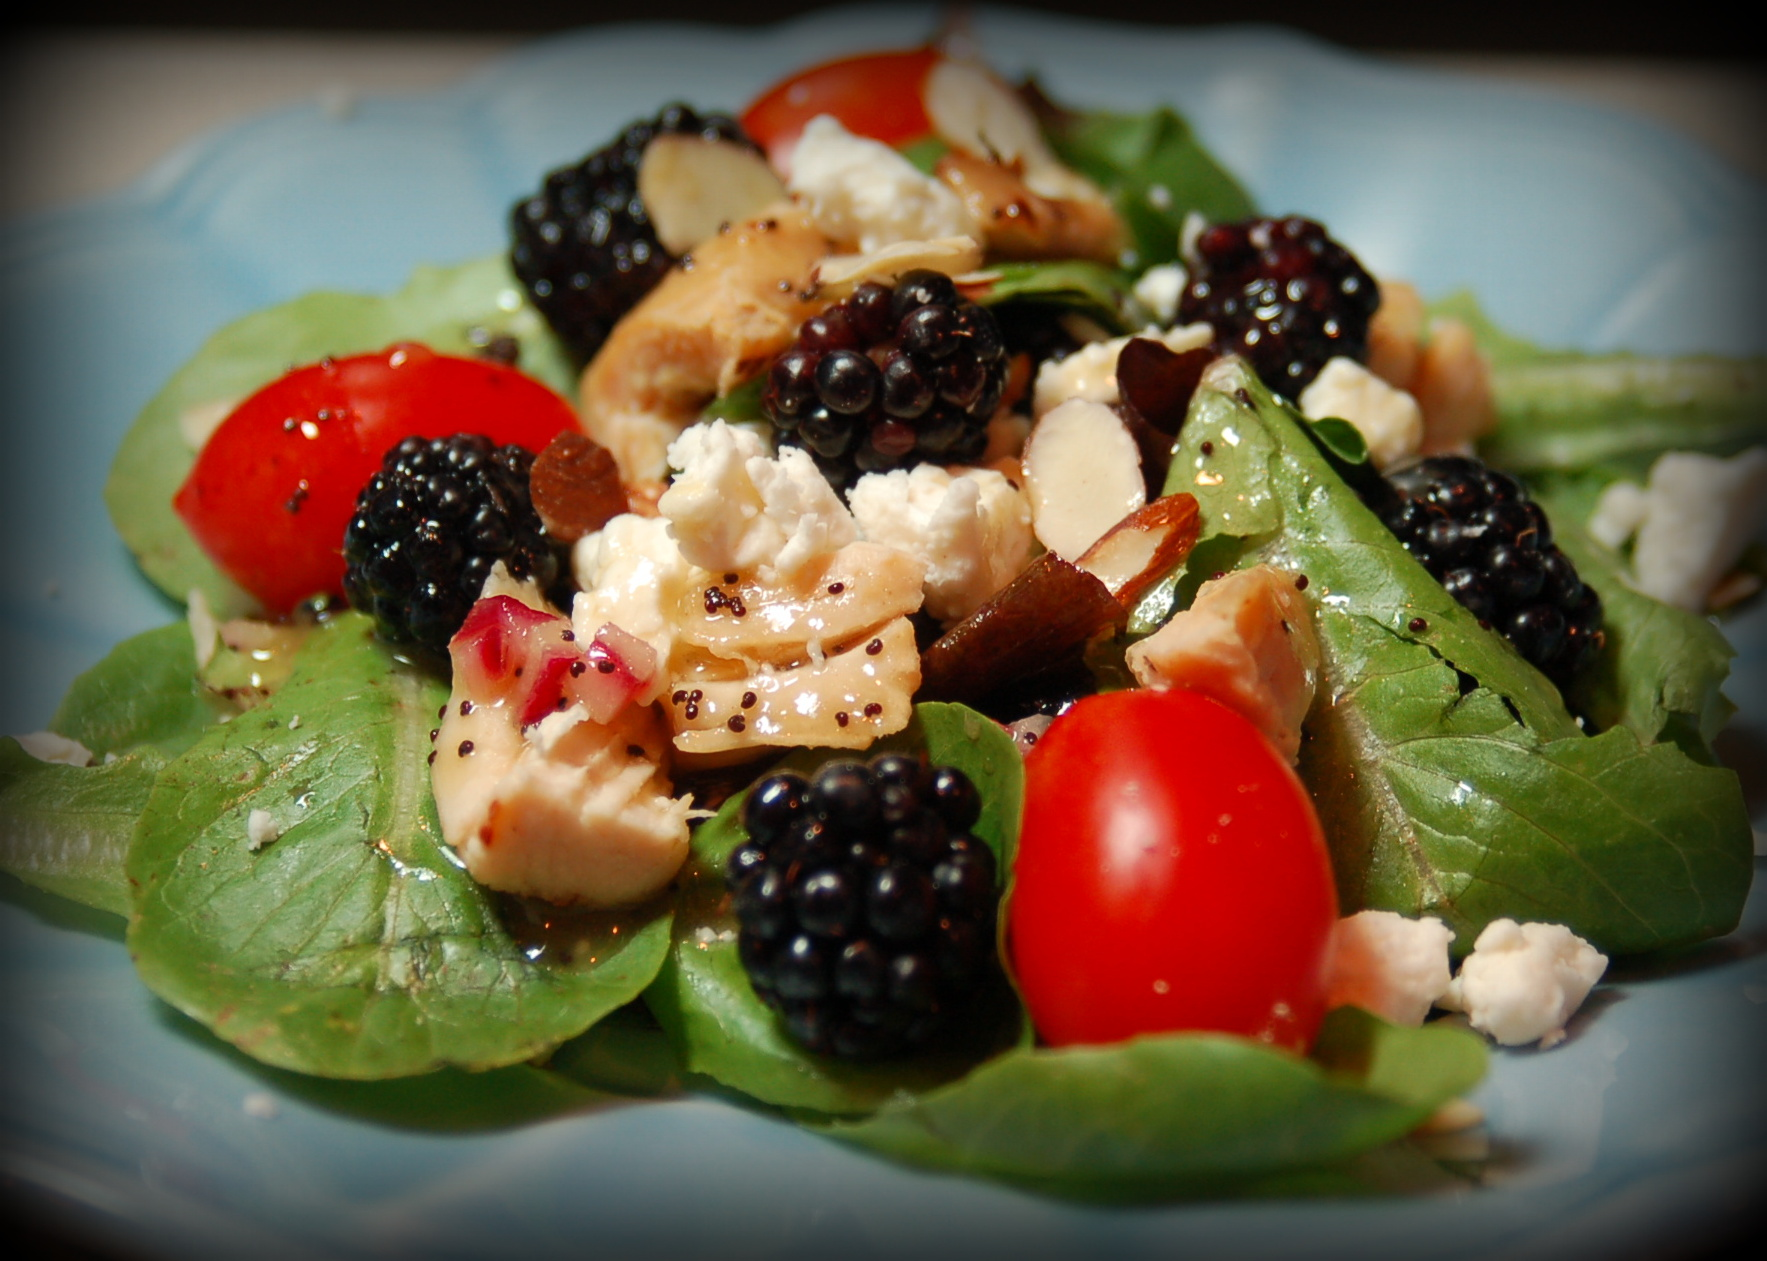 Blackberry and Grilled Chicken Salad | Pink Polka Dot Creations